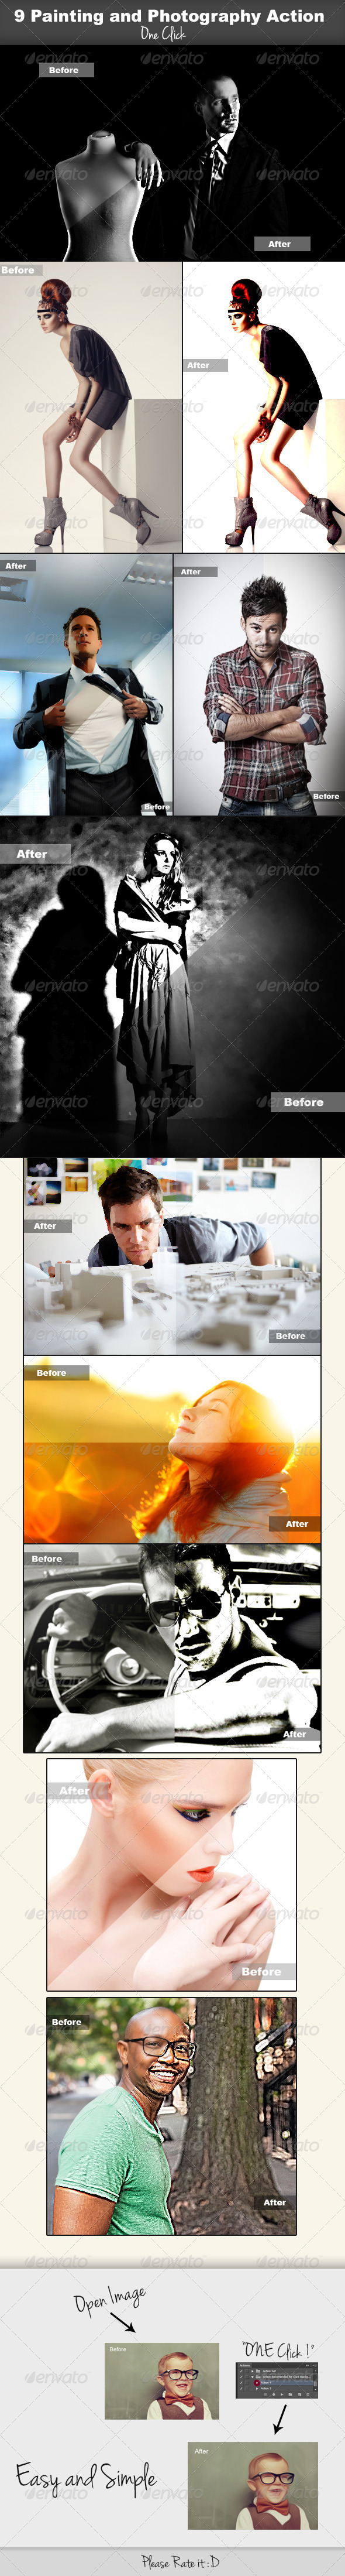 GraphicRiver 9 Painting and Photography Actions 4829920